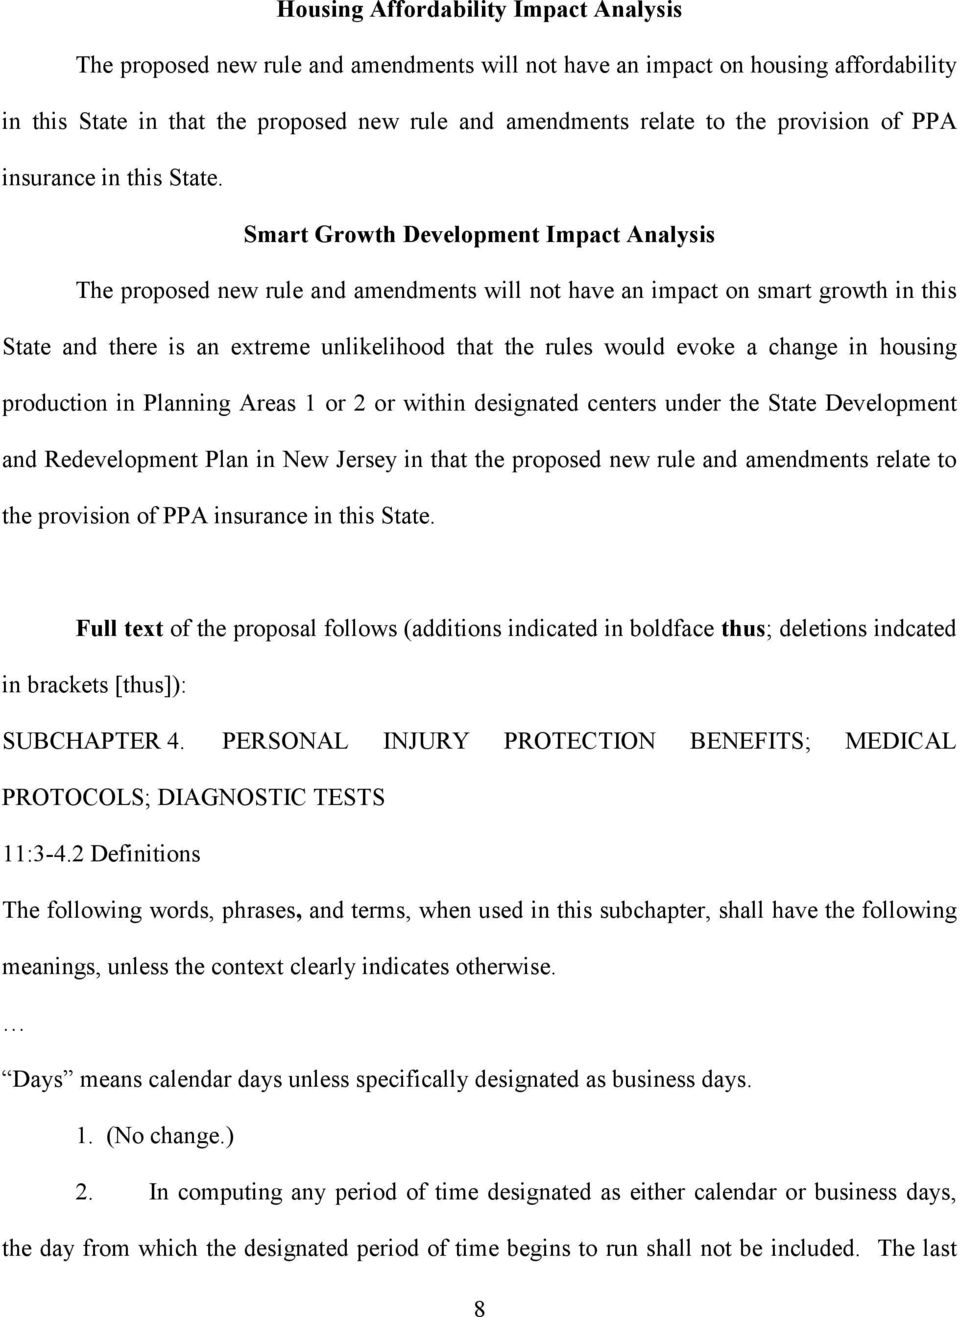 Smart Growth Development Impact Analysis The proposed new rule and amendments will not have an impact on smart growth in this State and there is an extreme unlikelihood that the rules would evoke a